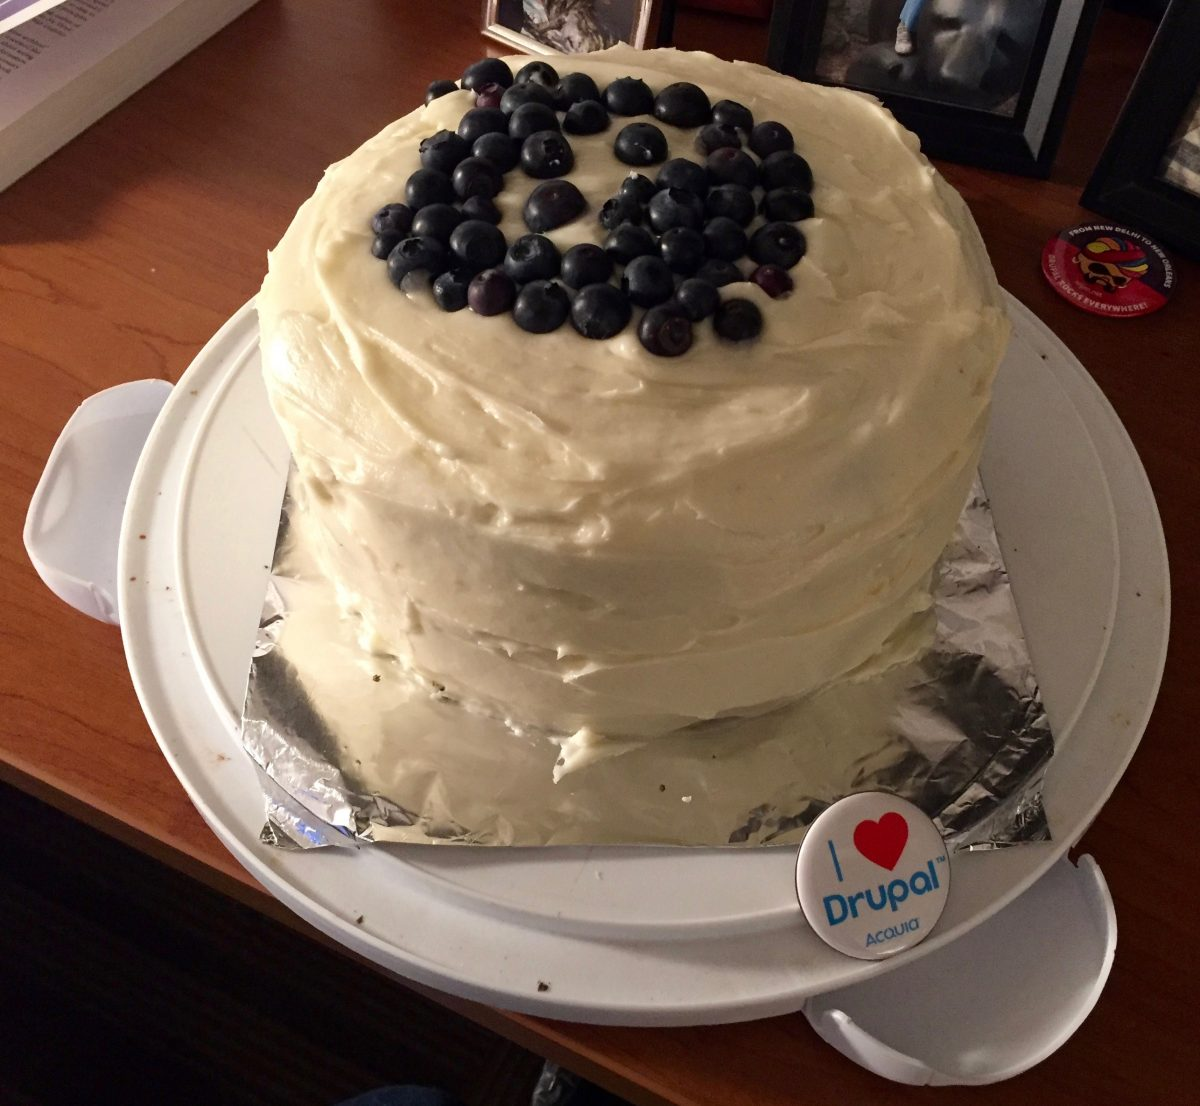 Cake with Drupal logo in blueberries